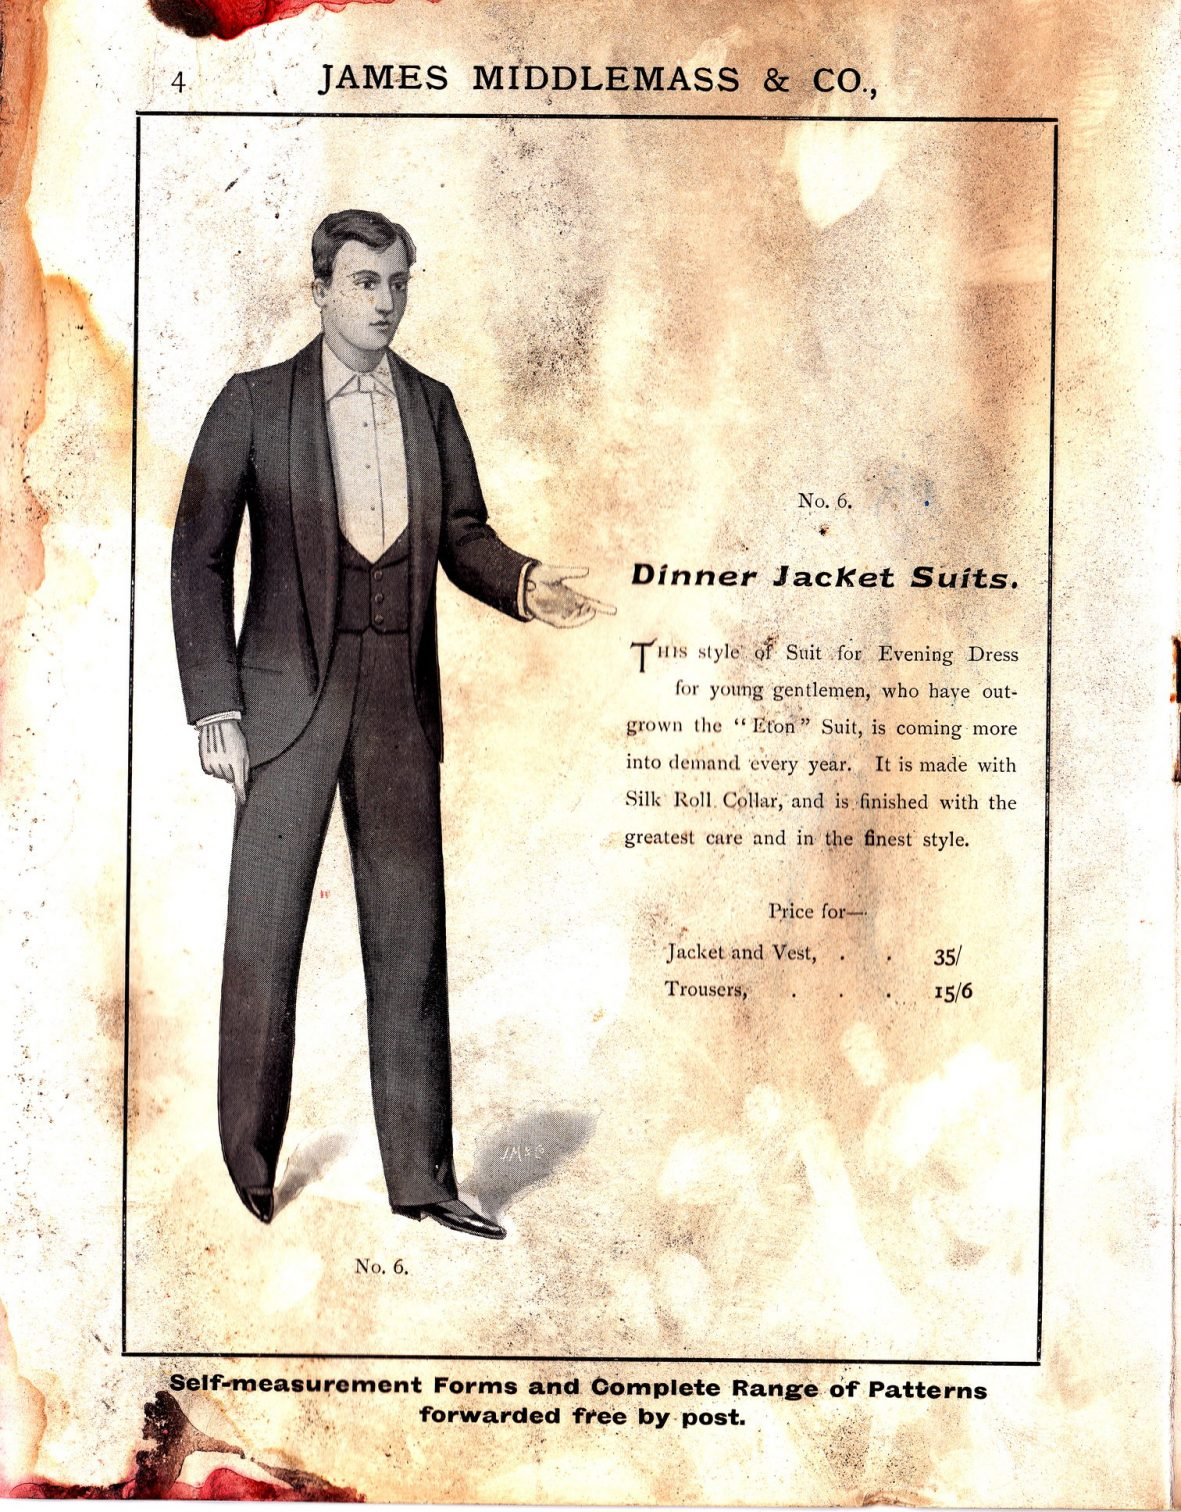 Dinner Jacket Suits